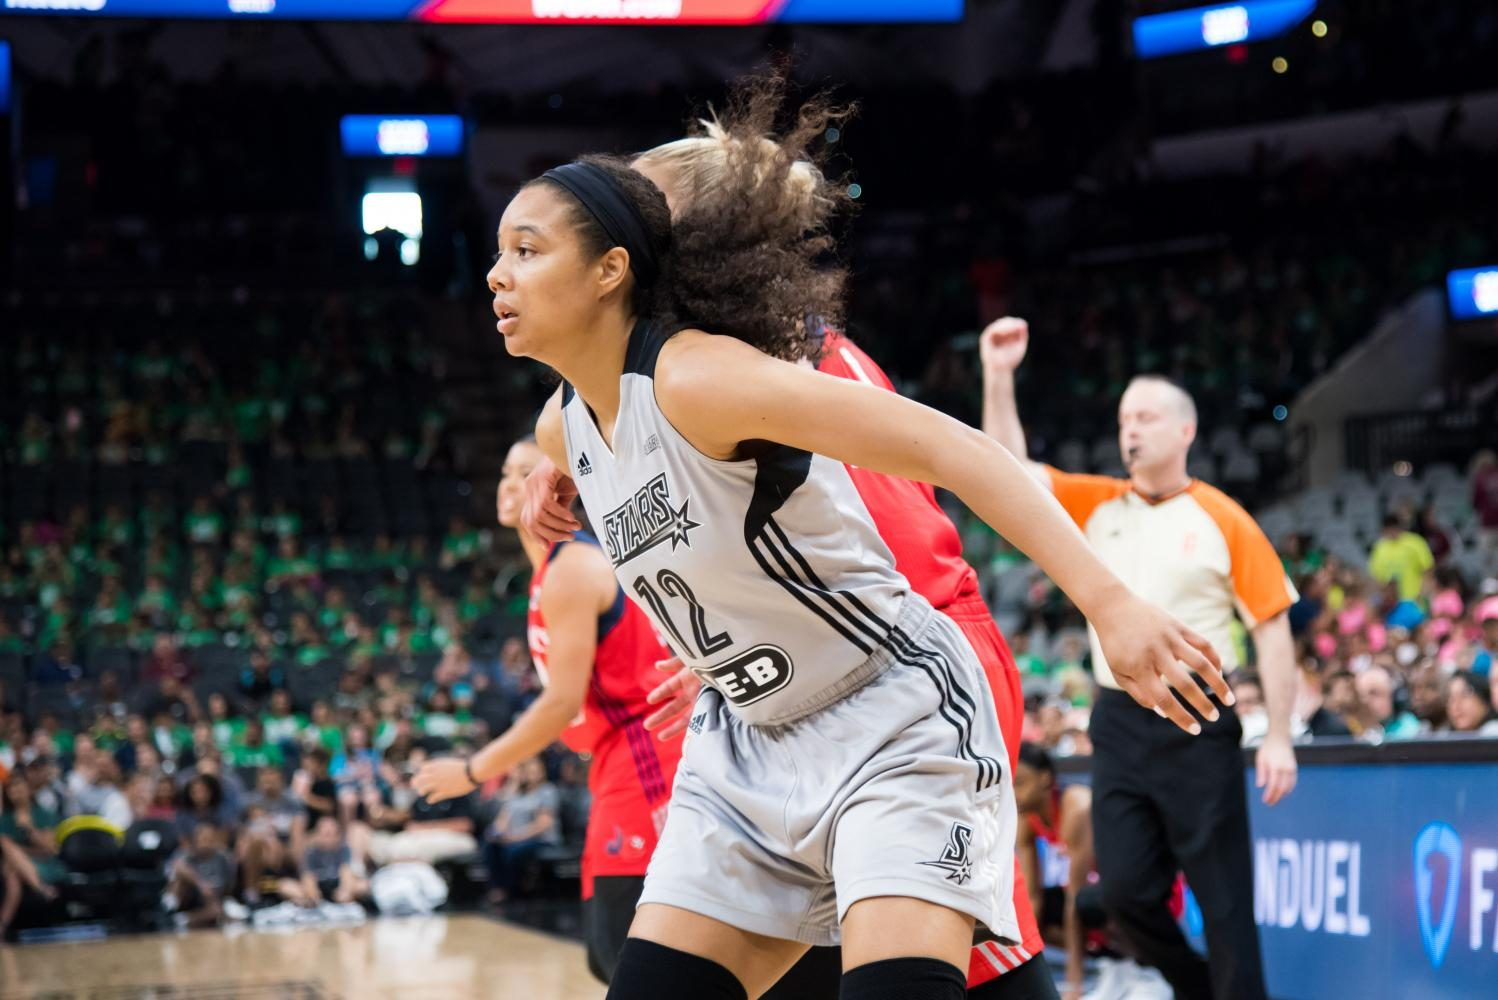 Nia+Coffey+boxes+out+an+opponent+for+a+rebound+in+San+Antonio%27s+July+25+game+against+the+Washington+Mystics.+Coffey+and+the+Stars+have+both+struggled+this+season.